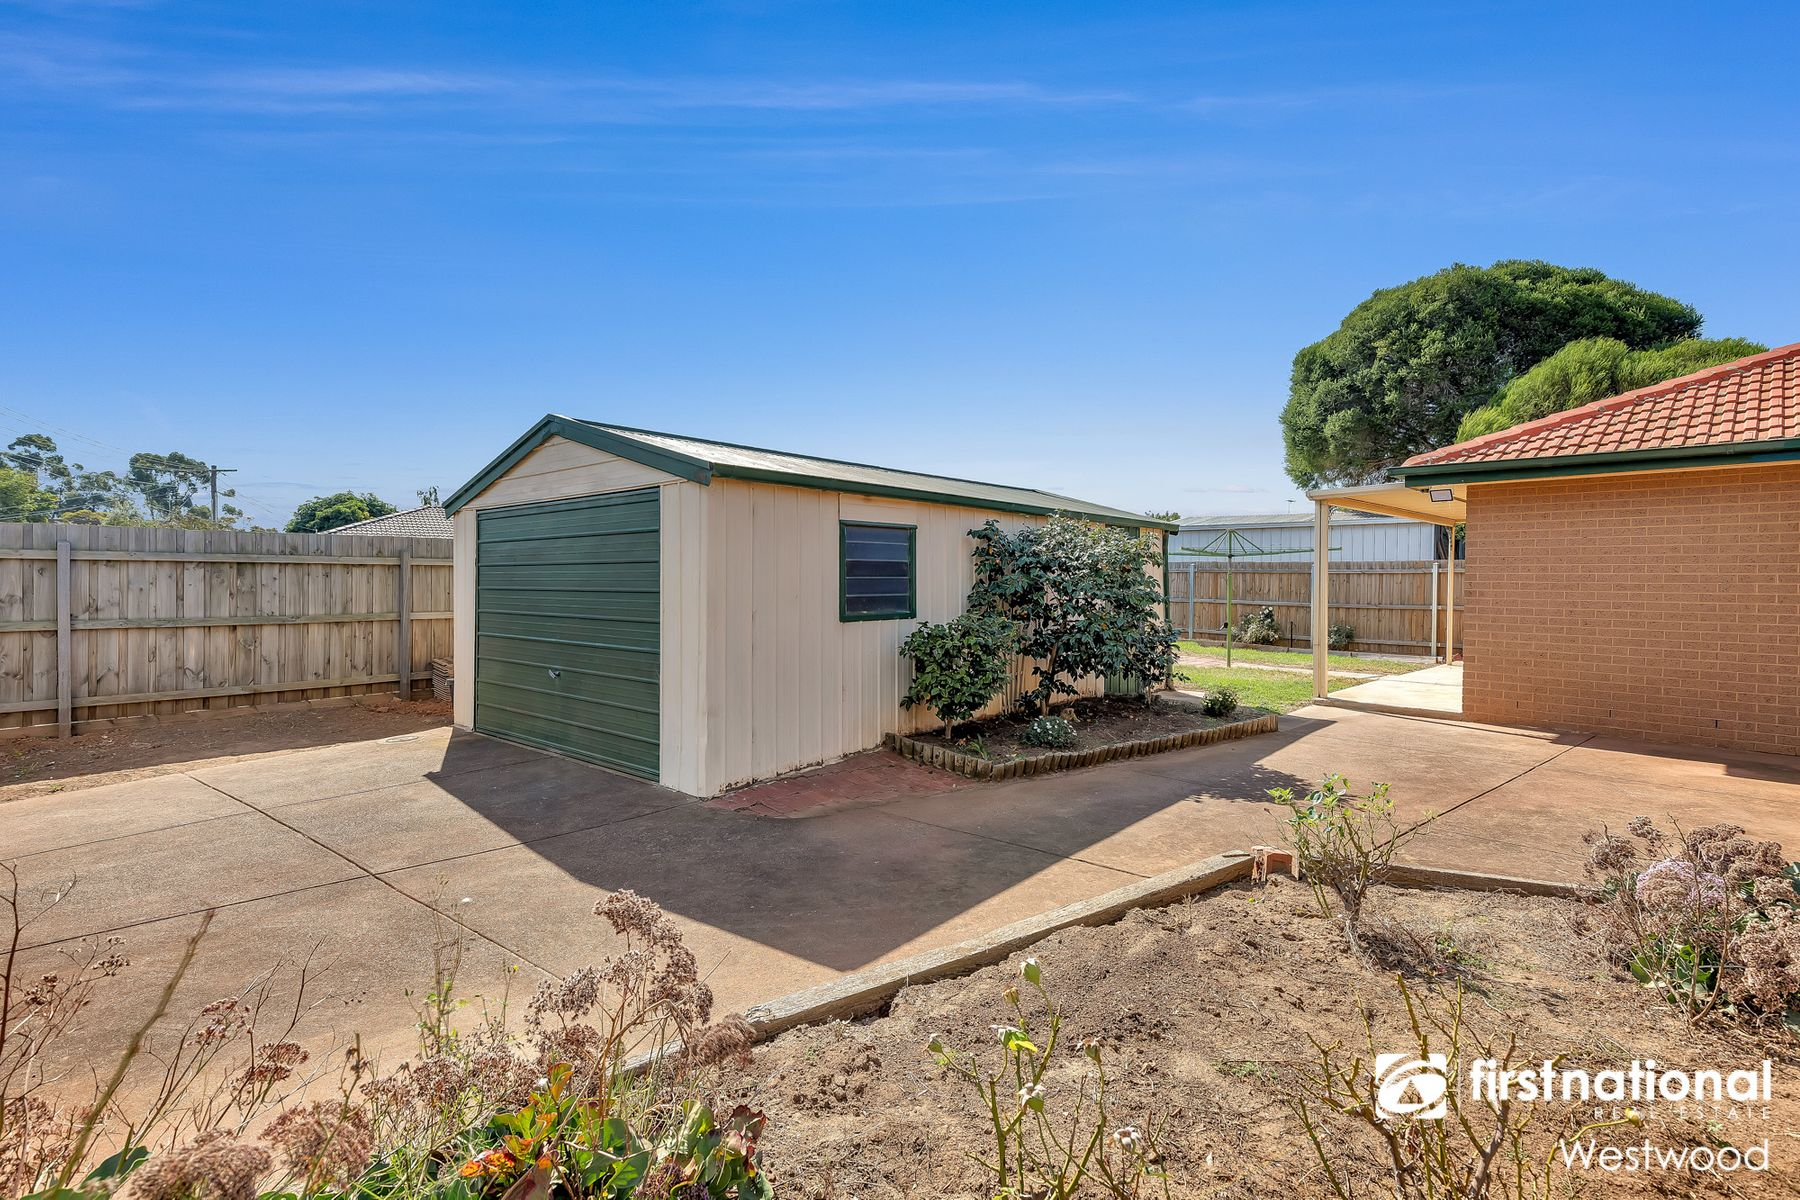 15 Quarbing Street, Werribee, VIC 3030